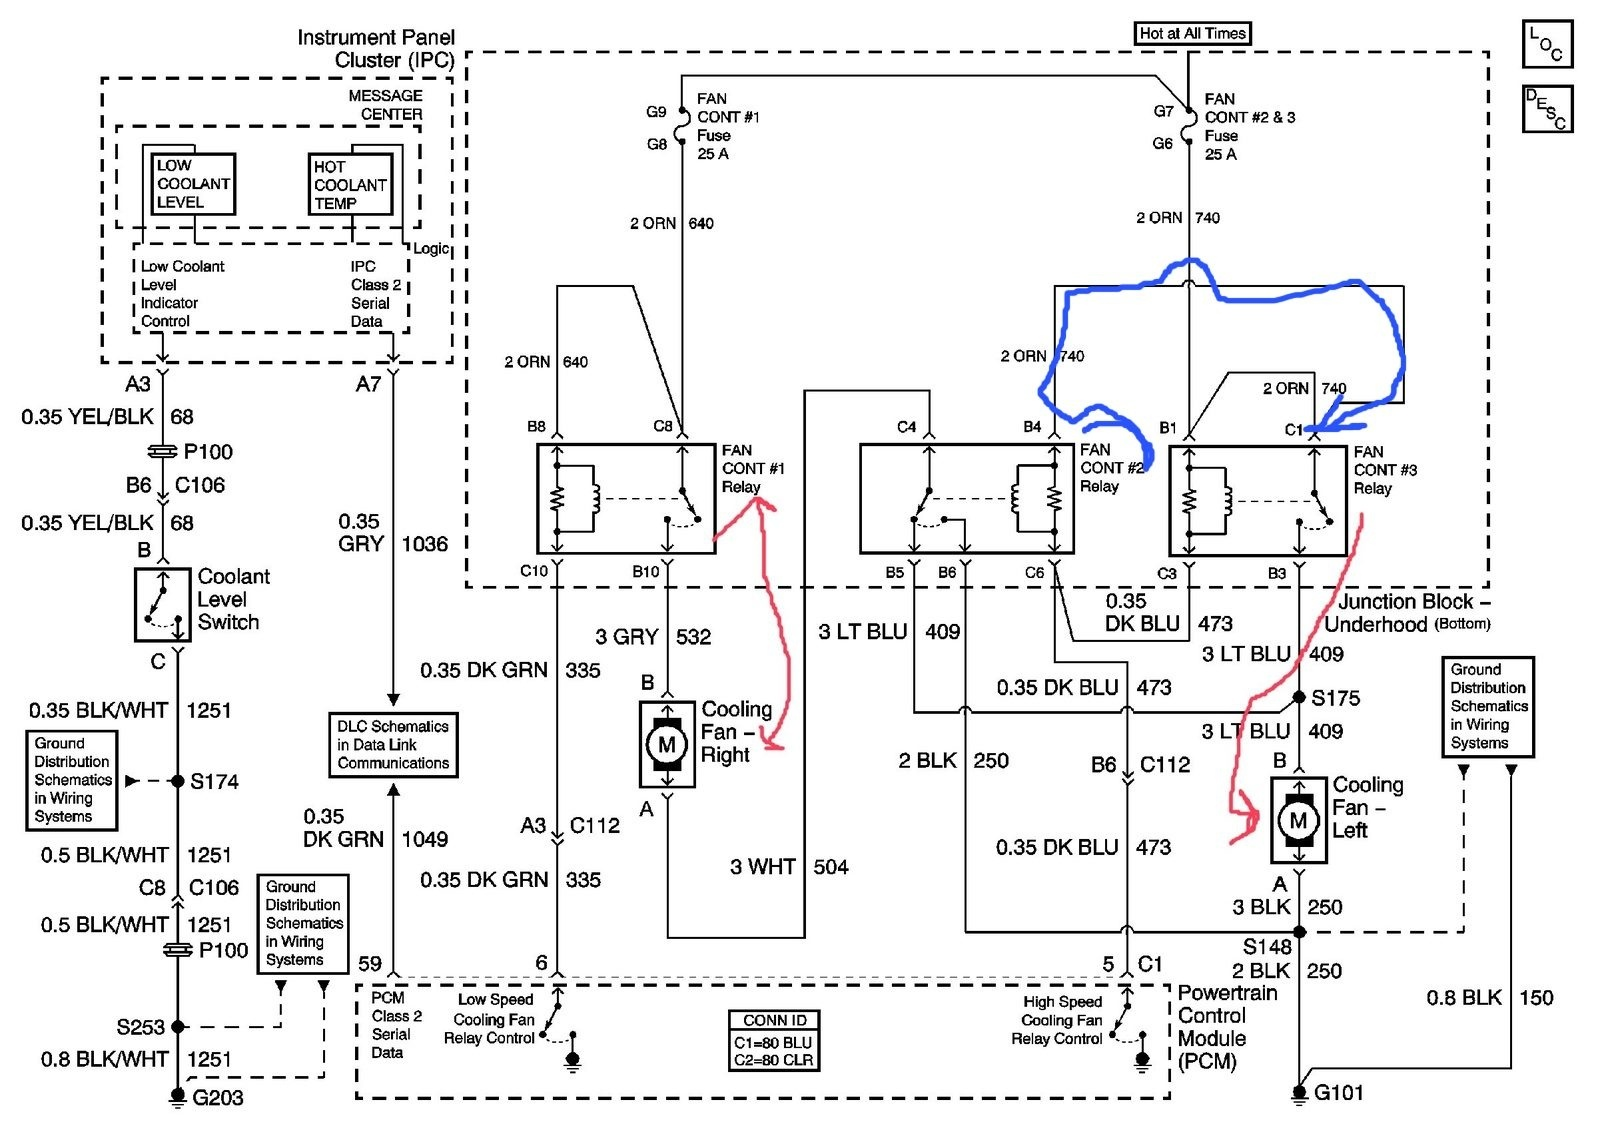 2004 Mustang Gt Radiator Fan Wiring Diagram - Schematic Liry on 2012 camaro wiring diagram, 2012 mustang gt headlights, 2012 f-150 wiring diagram, 2012 mustang gt service manual, 2012 mustang gt engine, 2012 transit wiring diagram, 2012 ford wiring diagram, 2012 tahoe wiring diagram, 2012 mustang gt wheels, 2012 mustang gt accessories, 2012 charger wiring diagram, 2012 mustang gt power steering, 2012 impala wiring diagram, 2012 mustang gt speaker size, 2012 f350 wiring diagram, 2012 mustang gt drive shaft, 2012 mustang gt suspension, 2012 mustang gt antenna, 2012 f250 wiring diagram, 2012 mustang gt brakes,